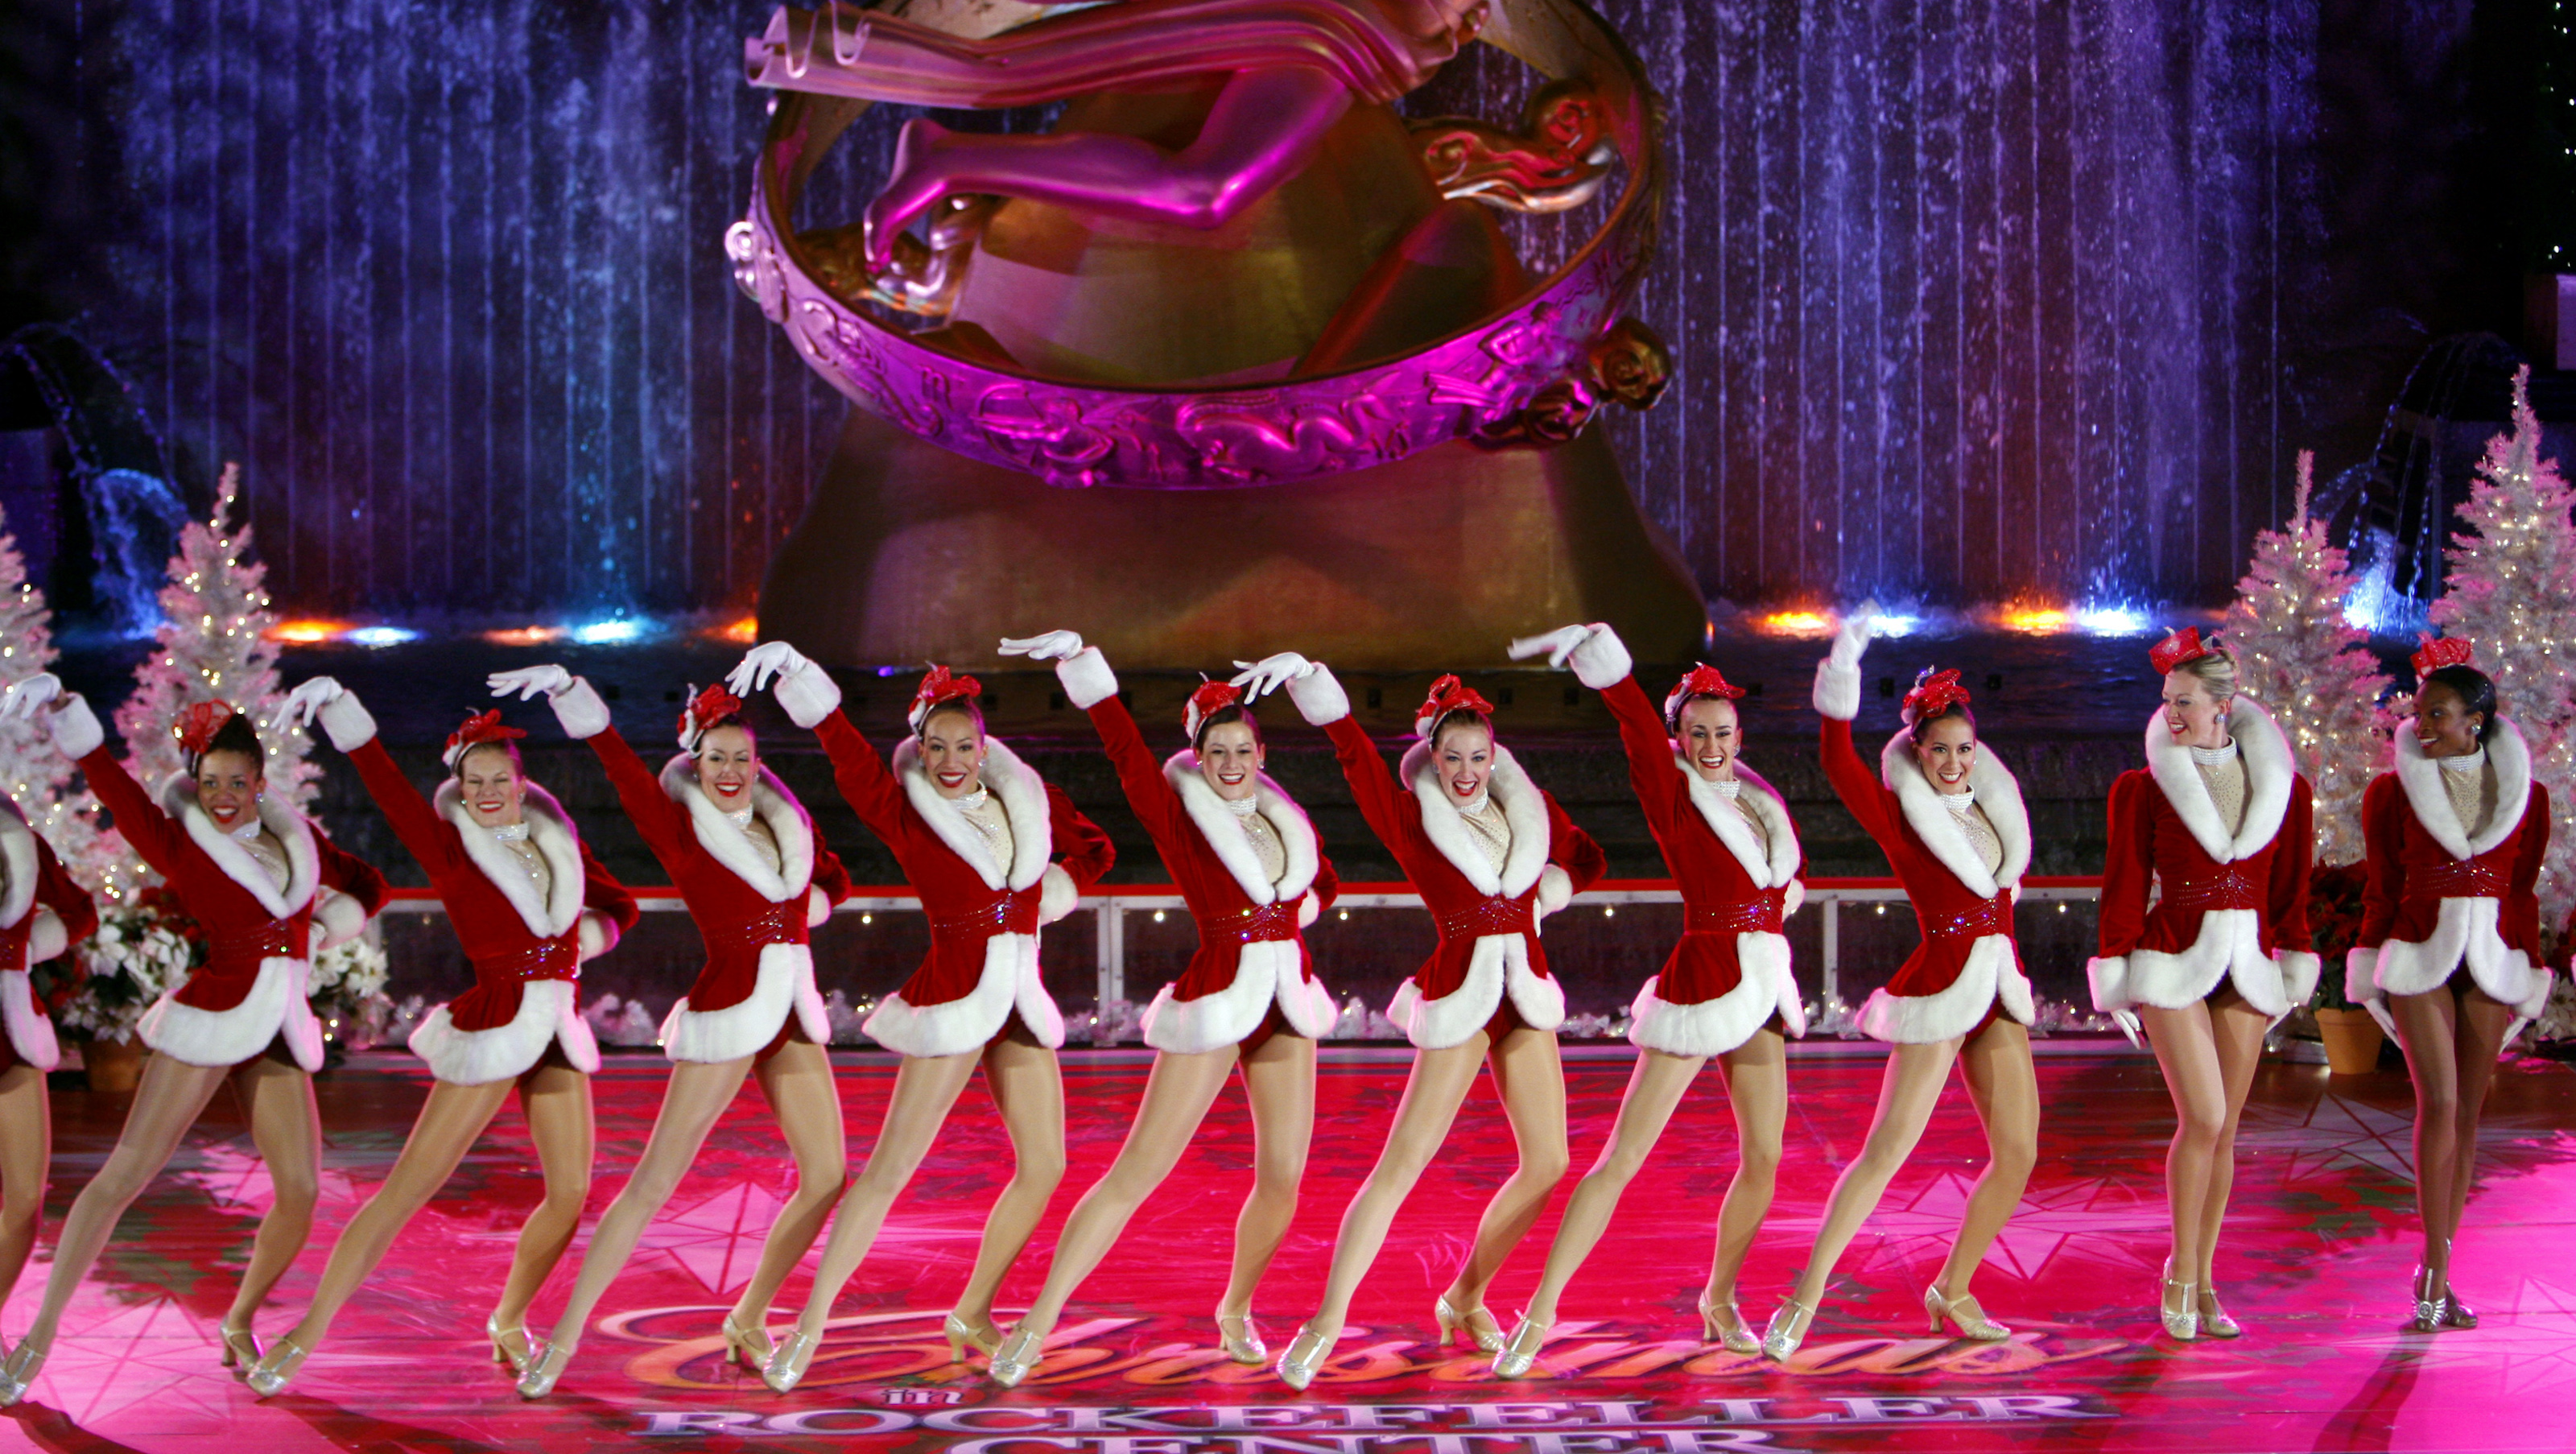 The Rockettes perform during the 76th annual Rockefeller Center Christmas Tree lighting ceremony in New York December 3, 2008.     REUTERS/Brendan McDermid (UNITED STATES) - RTR228LK